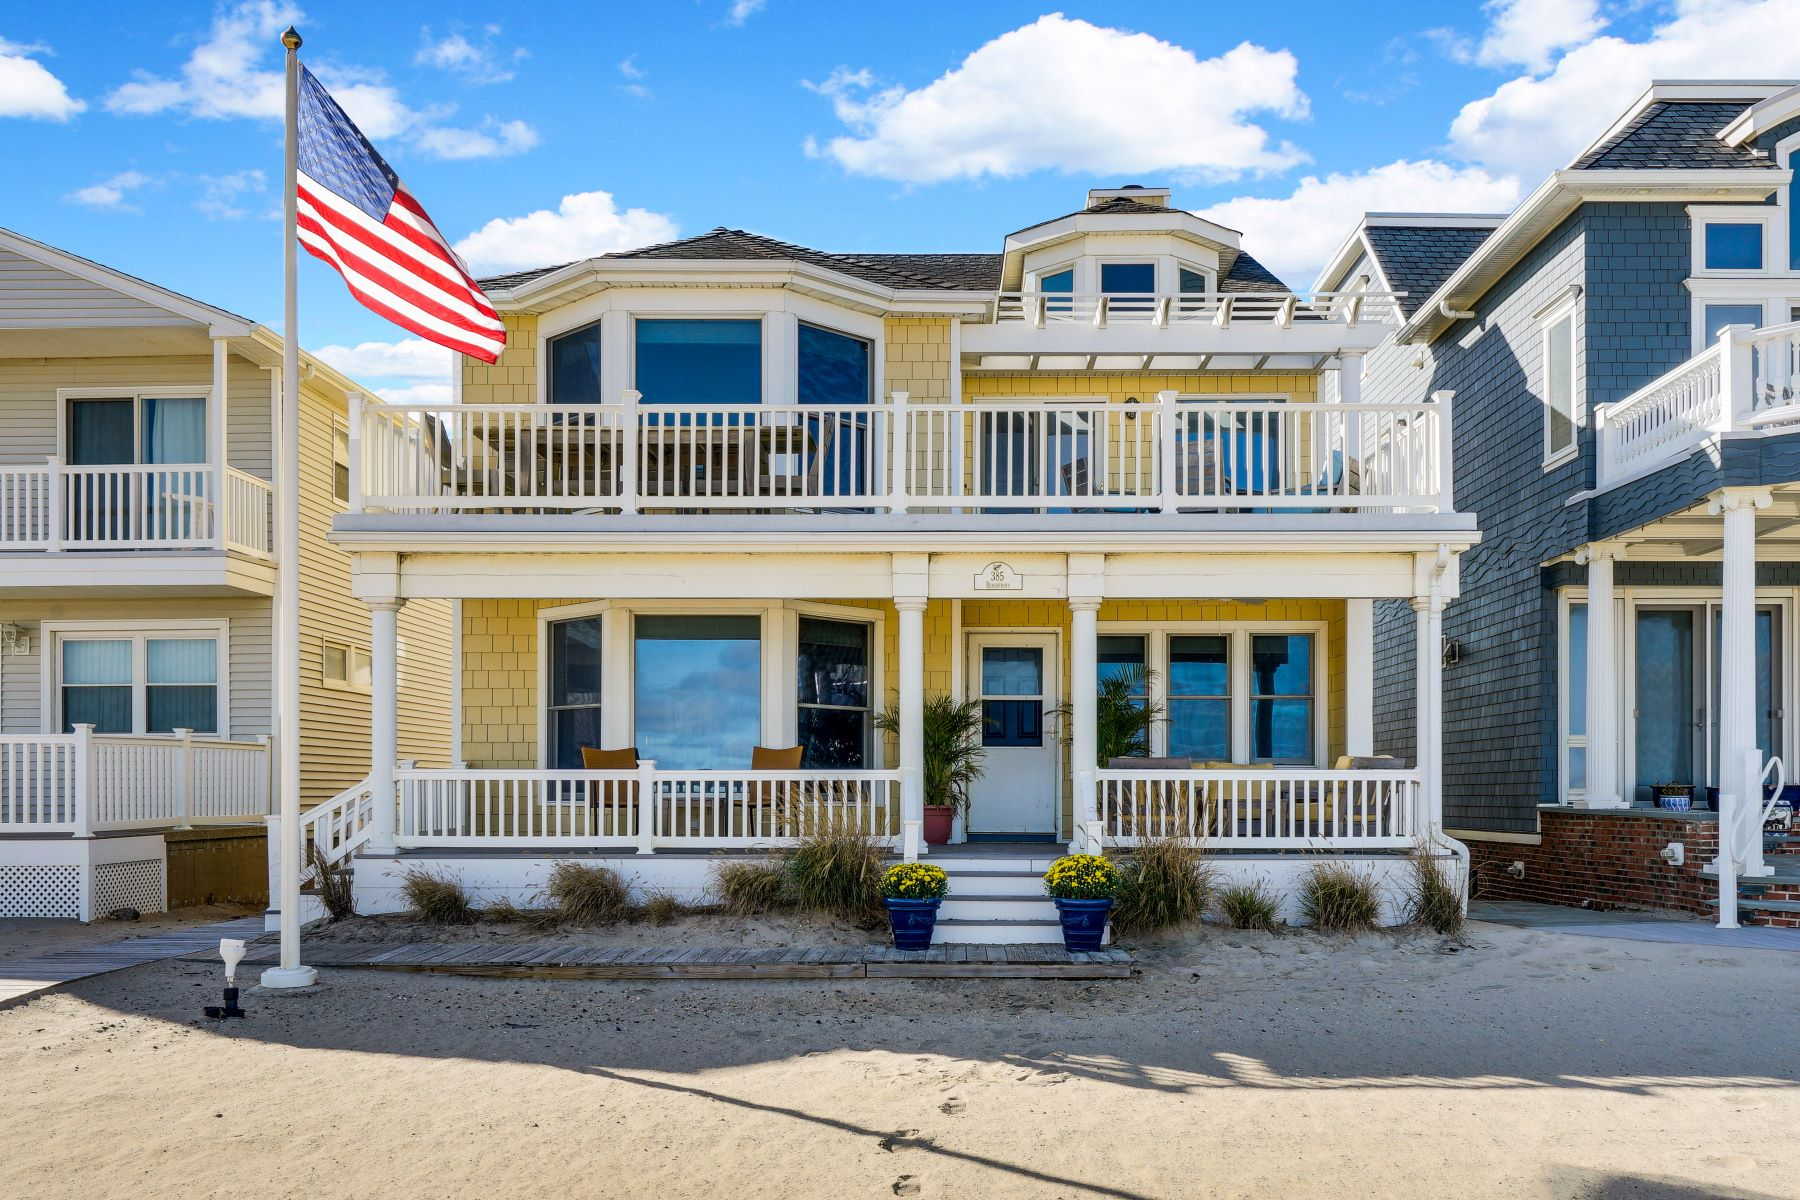 Single Family Homes for Active at Manasquan Beachfront Compound 385 Beachfront Manasquan, New Jersey 08736 United States